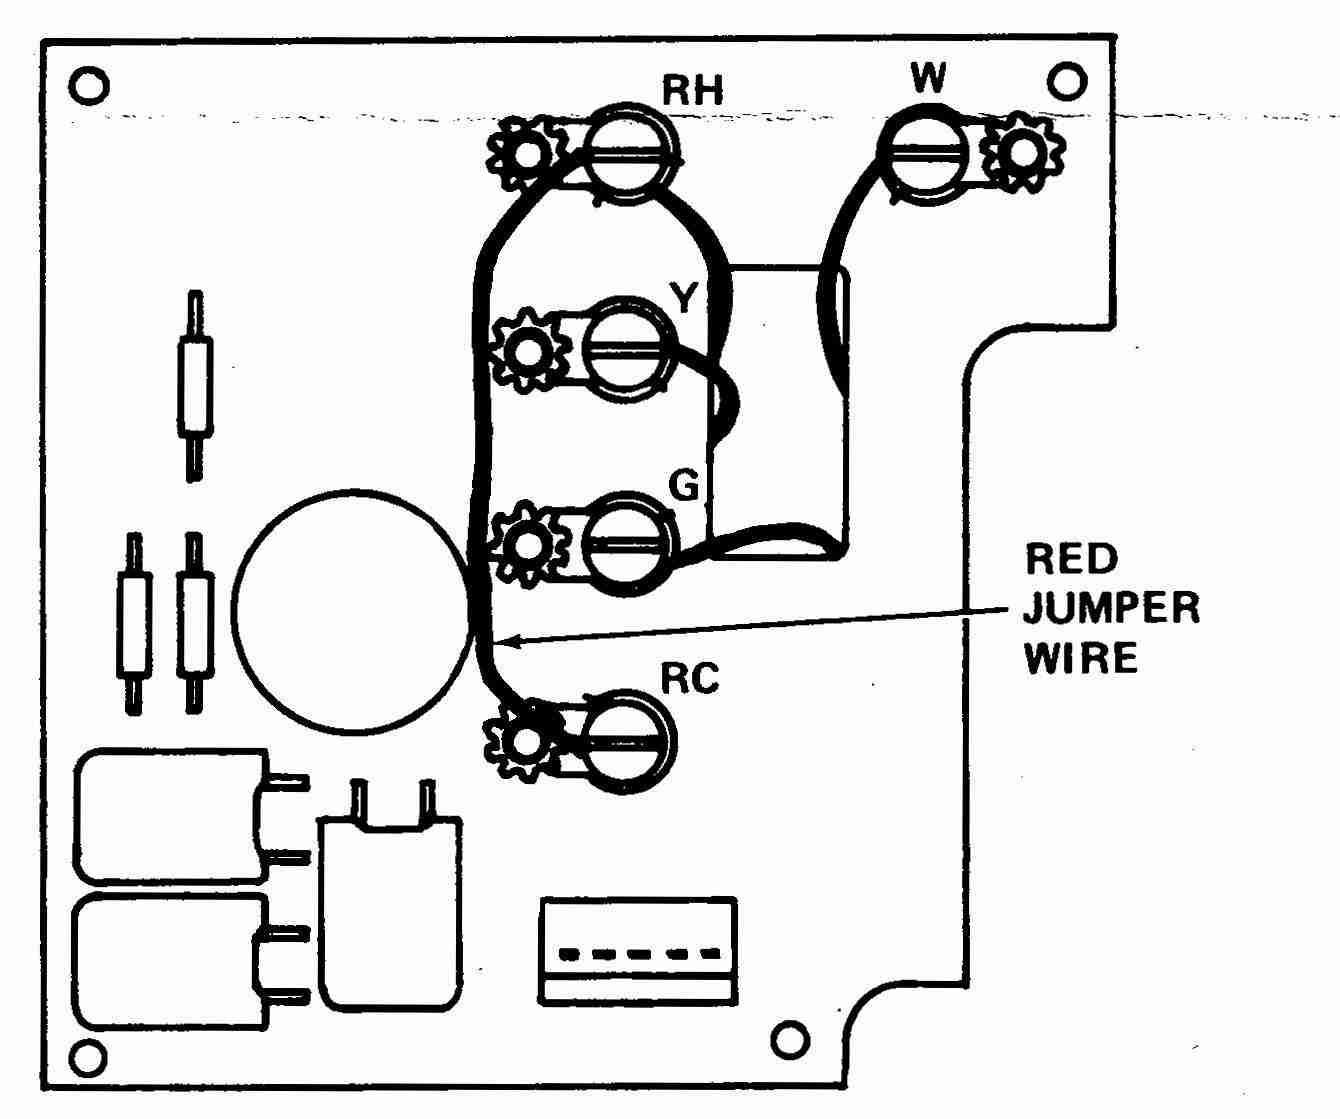 Thermostat Wiring For Furnace Only